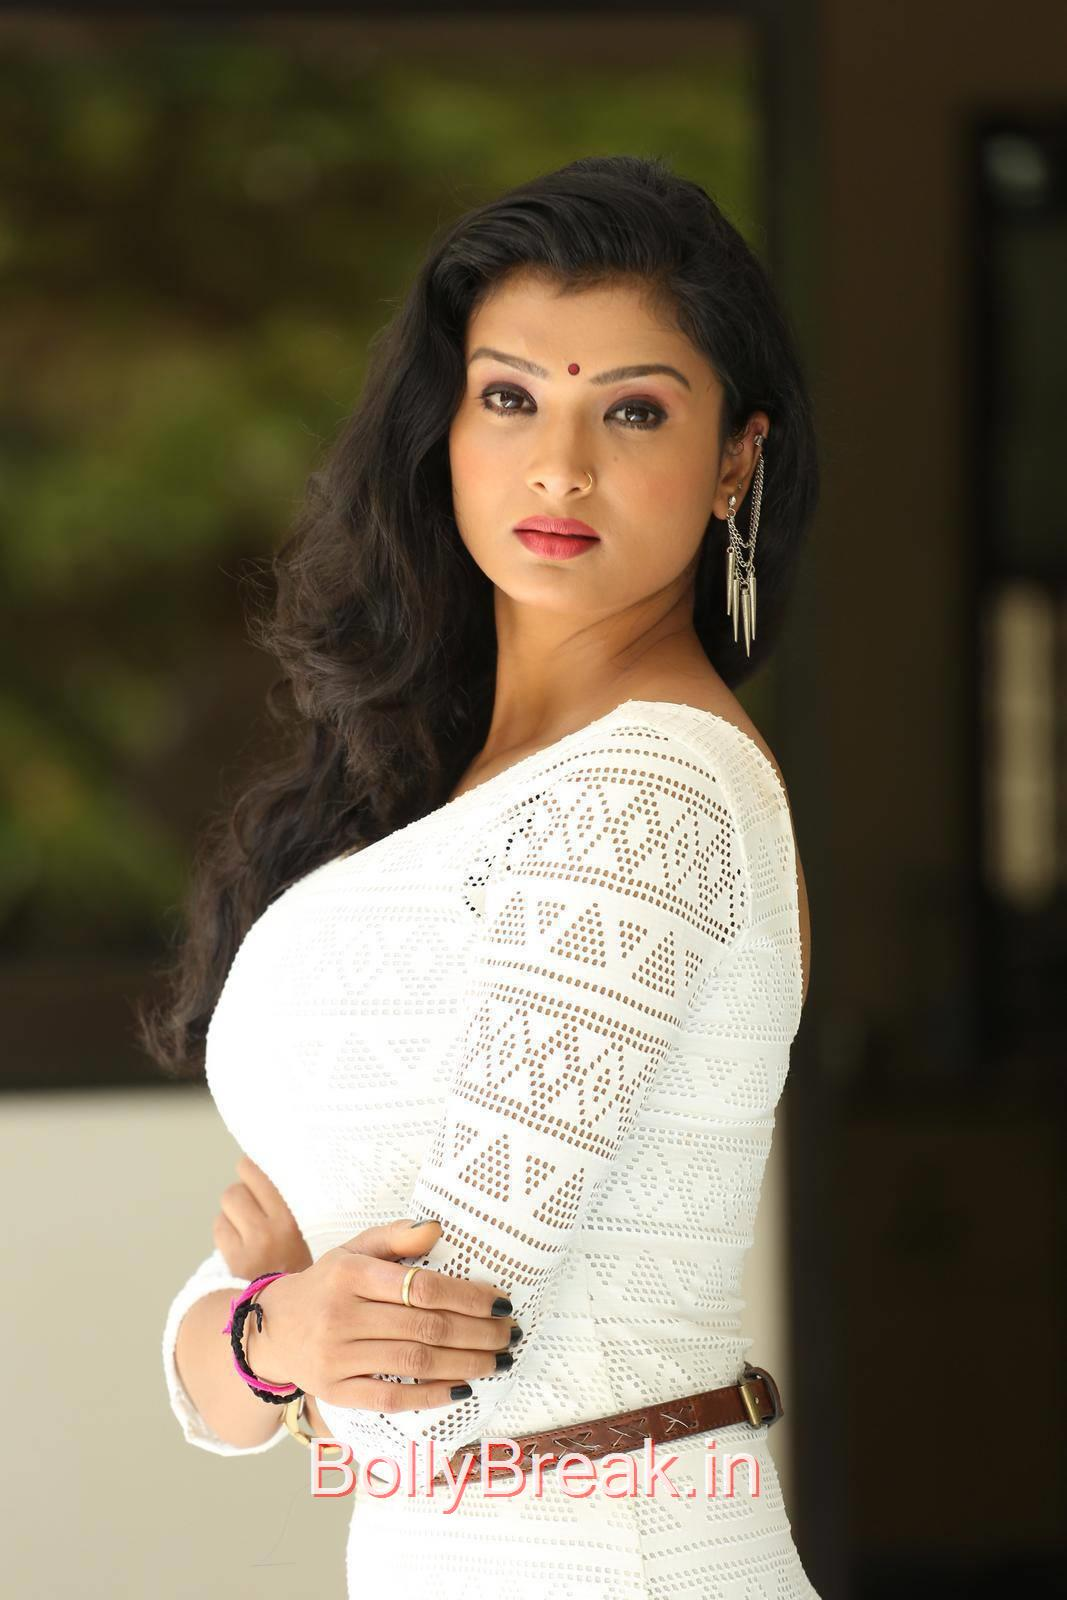 Ishita Pictures, Actress Ishita Side Pose Hot Photo Gallery in HD